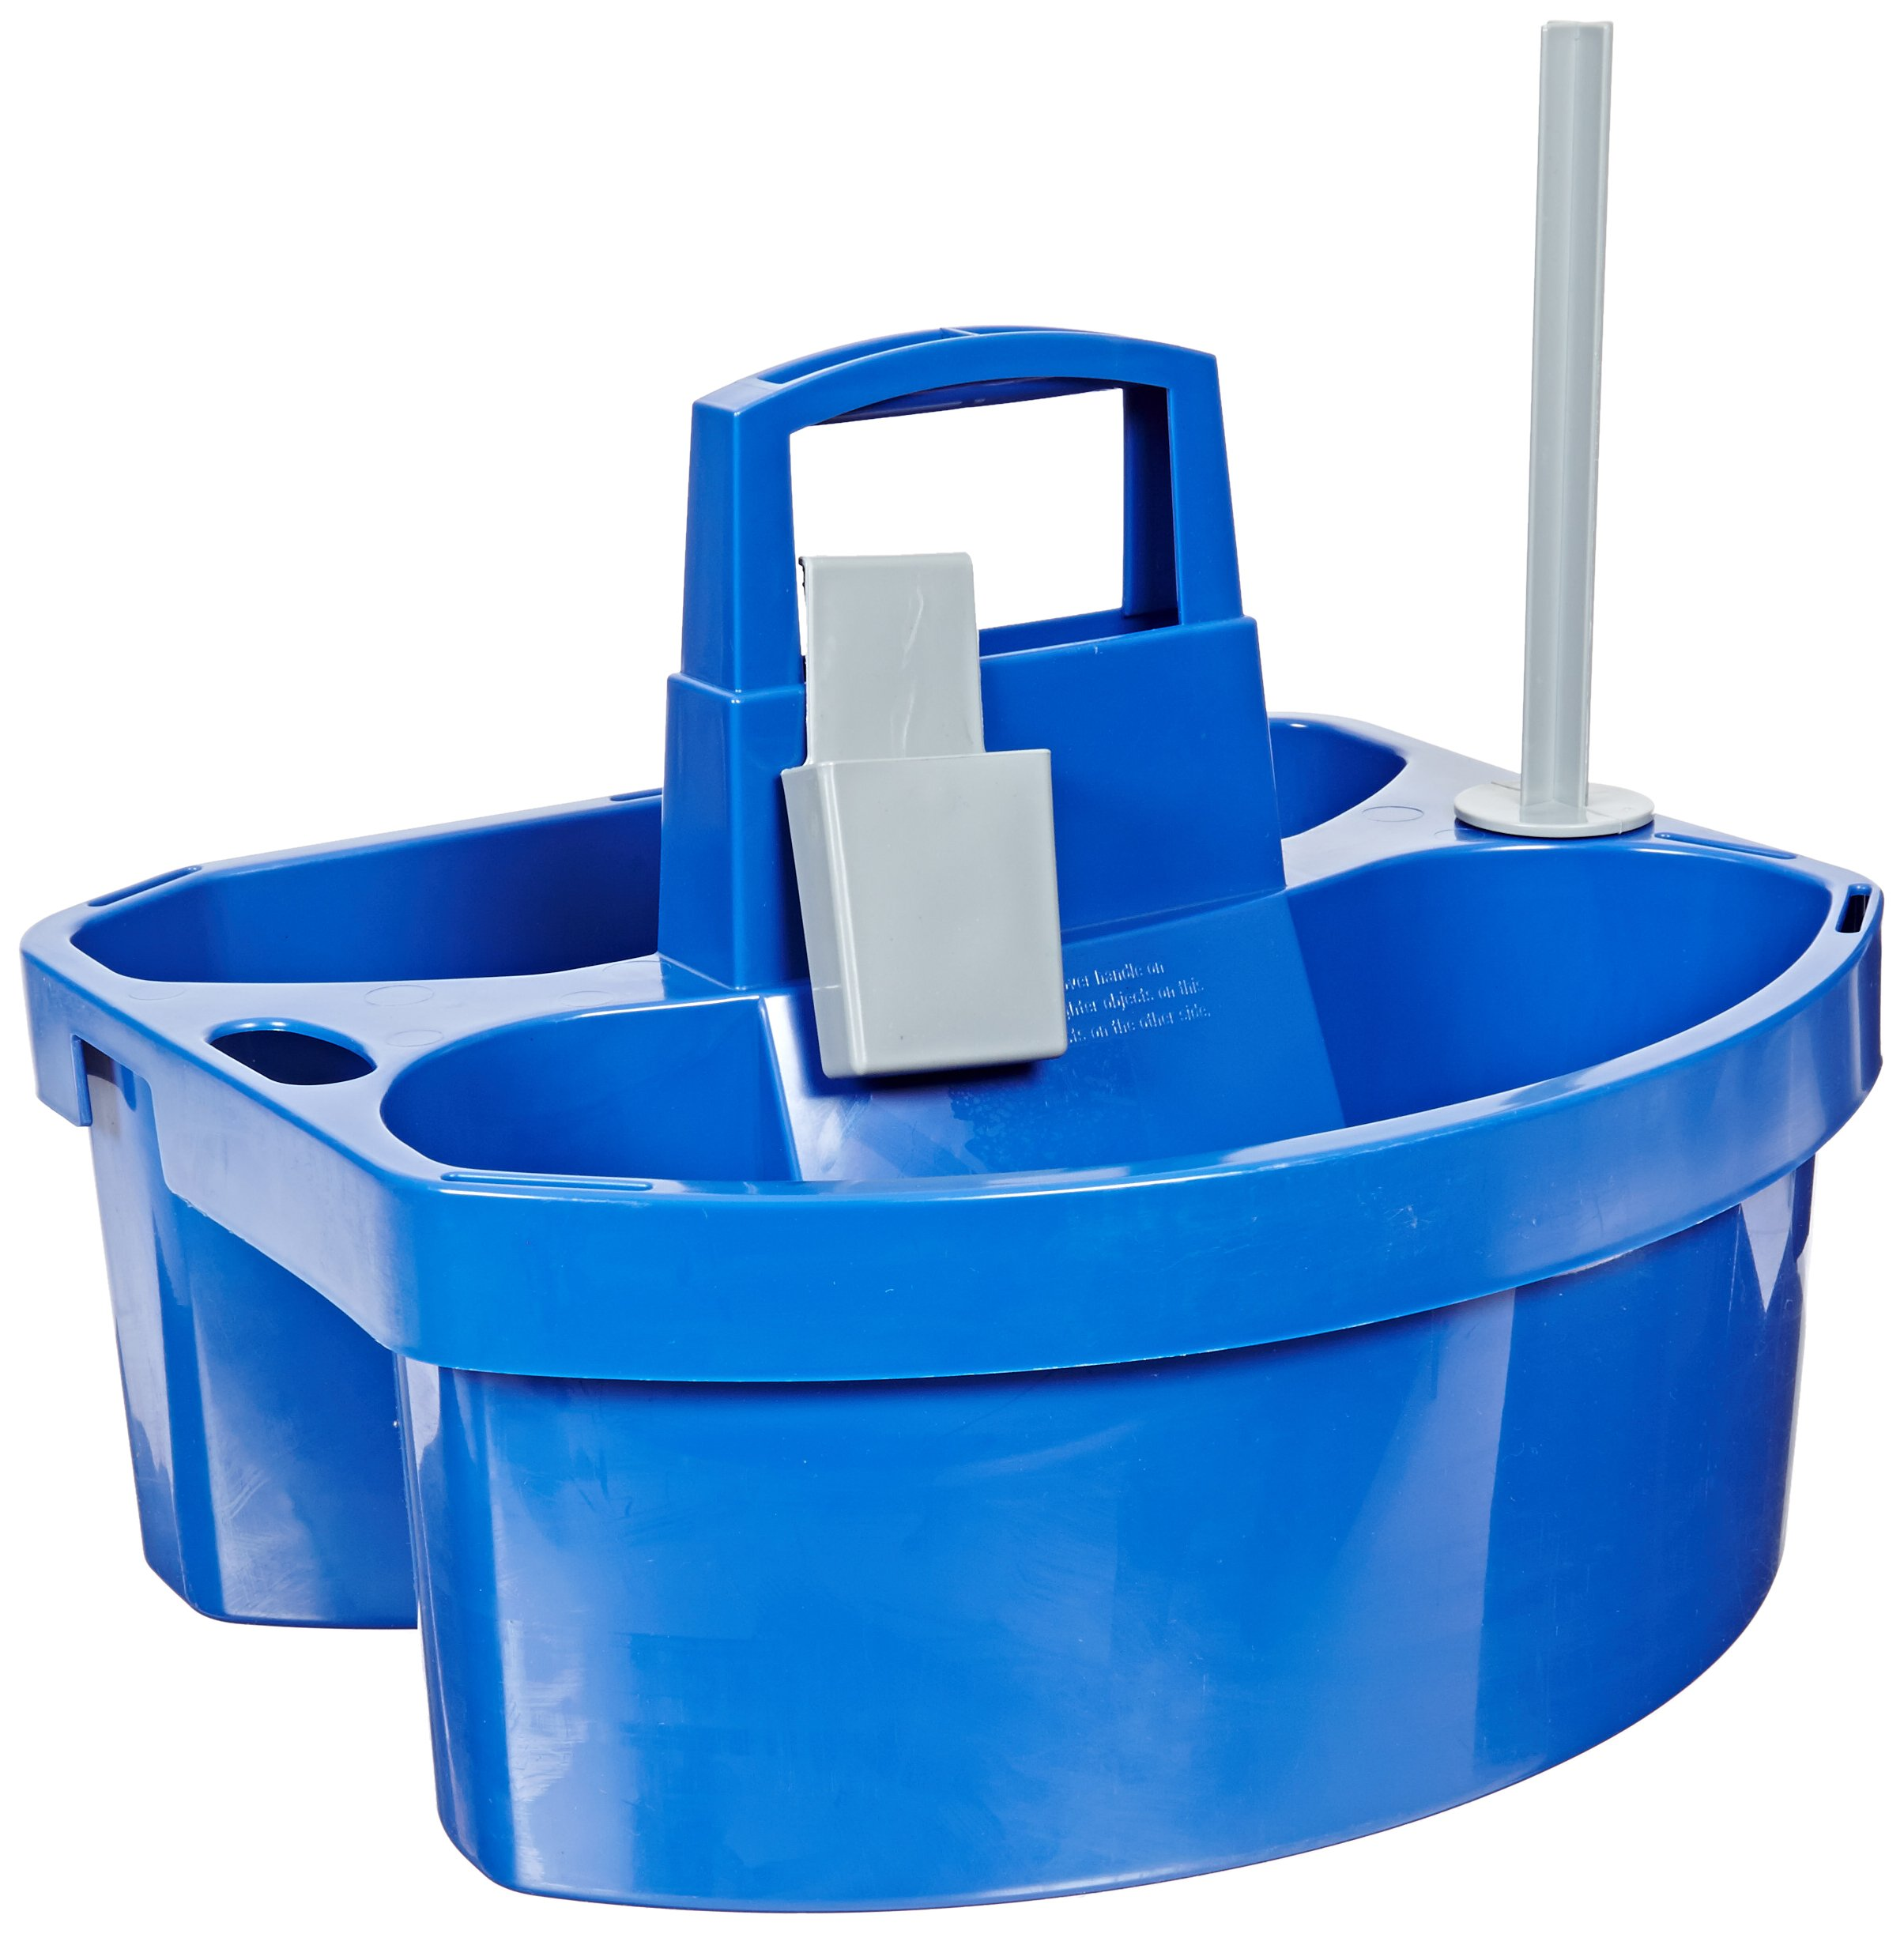 Impact 1850 GatorMate Portable Caddy, 15'' Length x 14'' Width x 14'' Height, Blue (Case of 4)